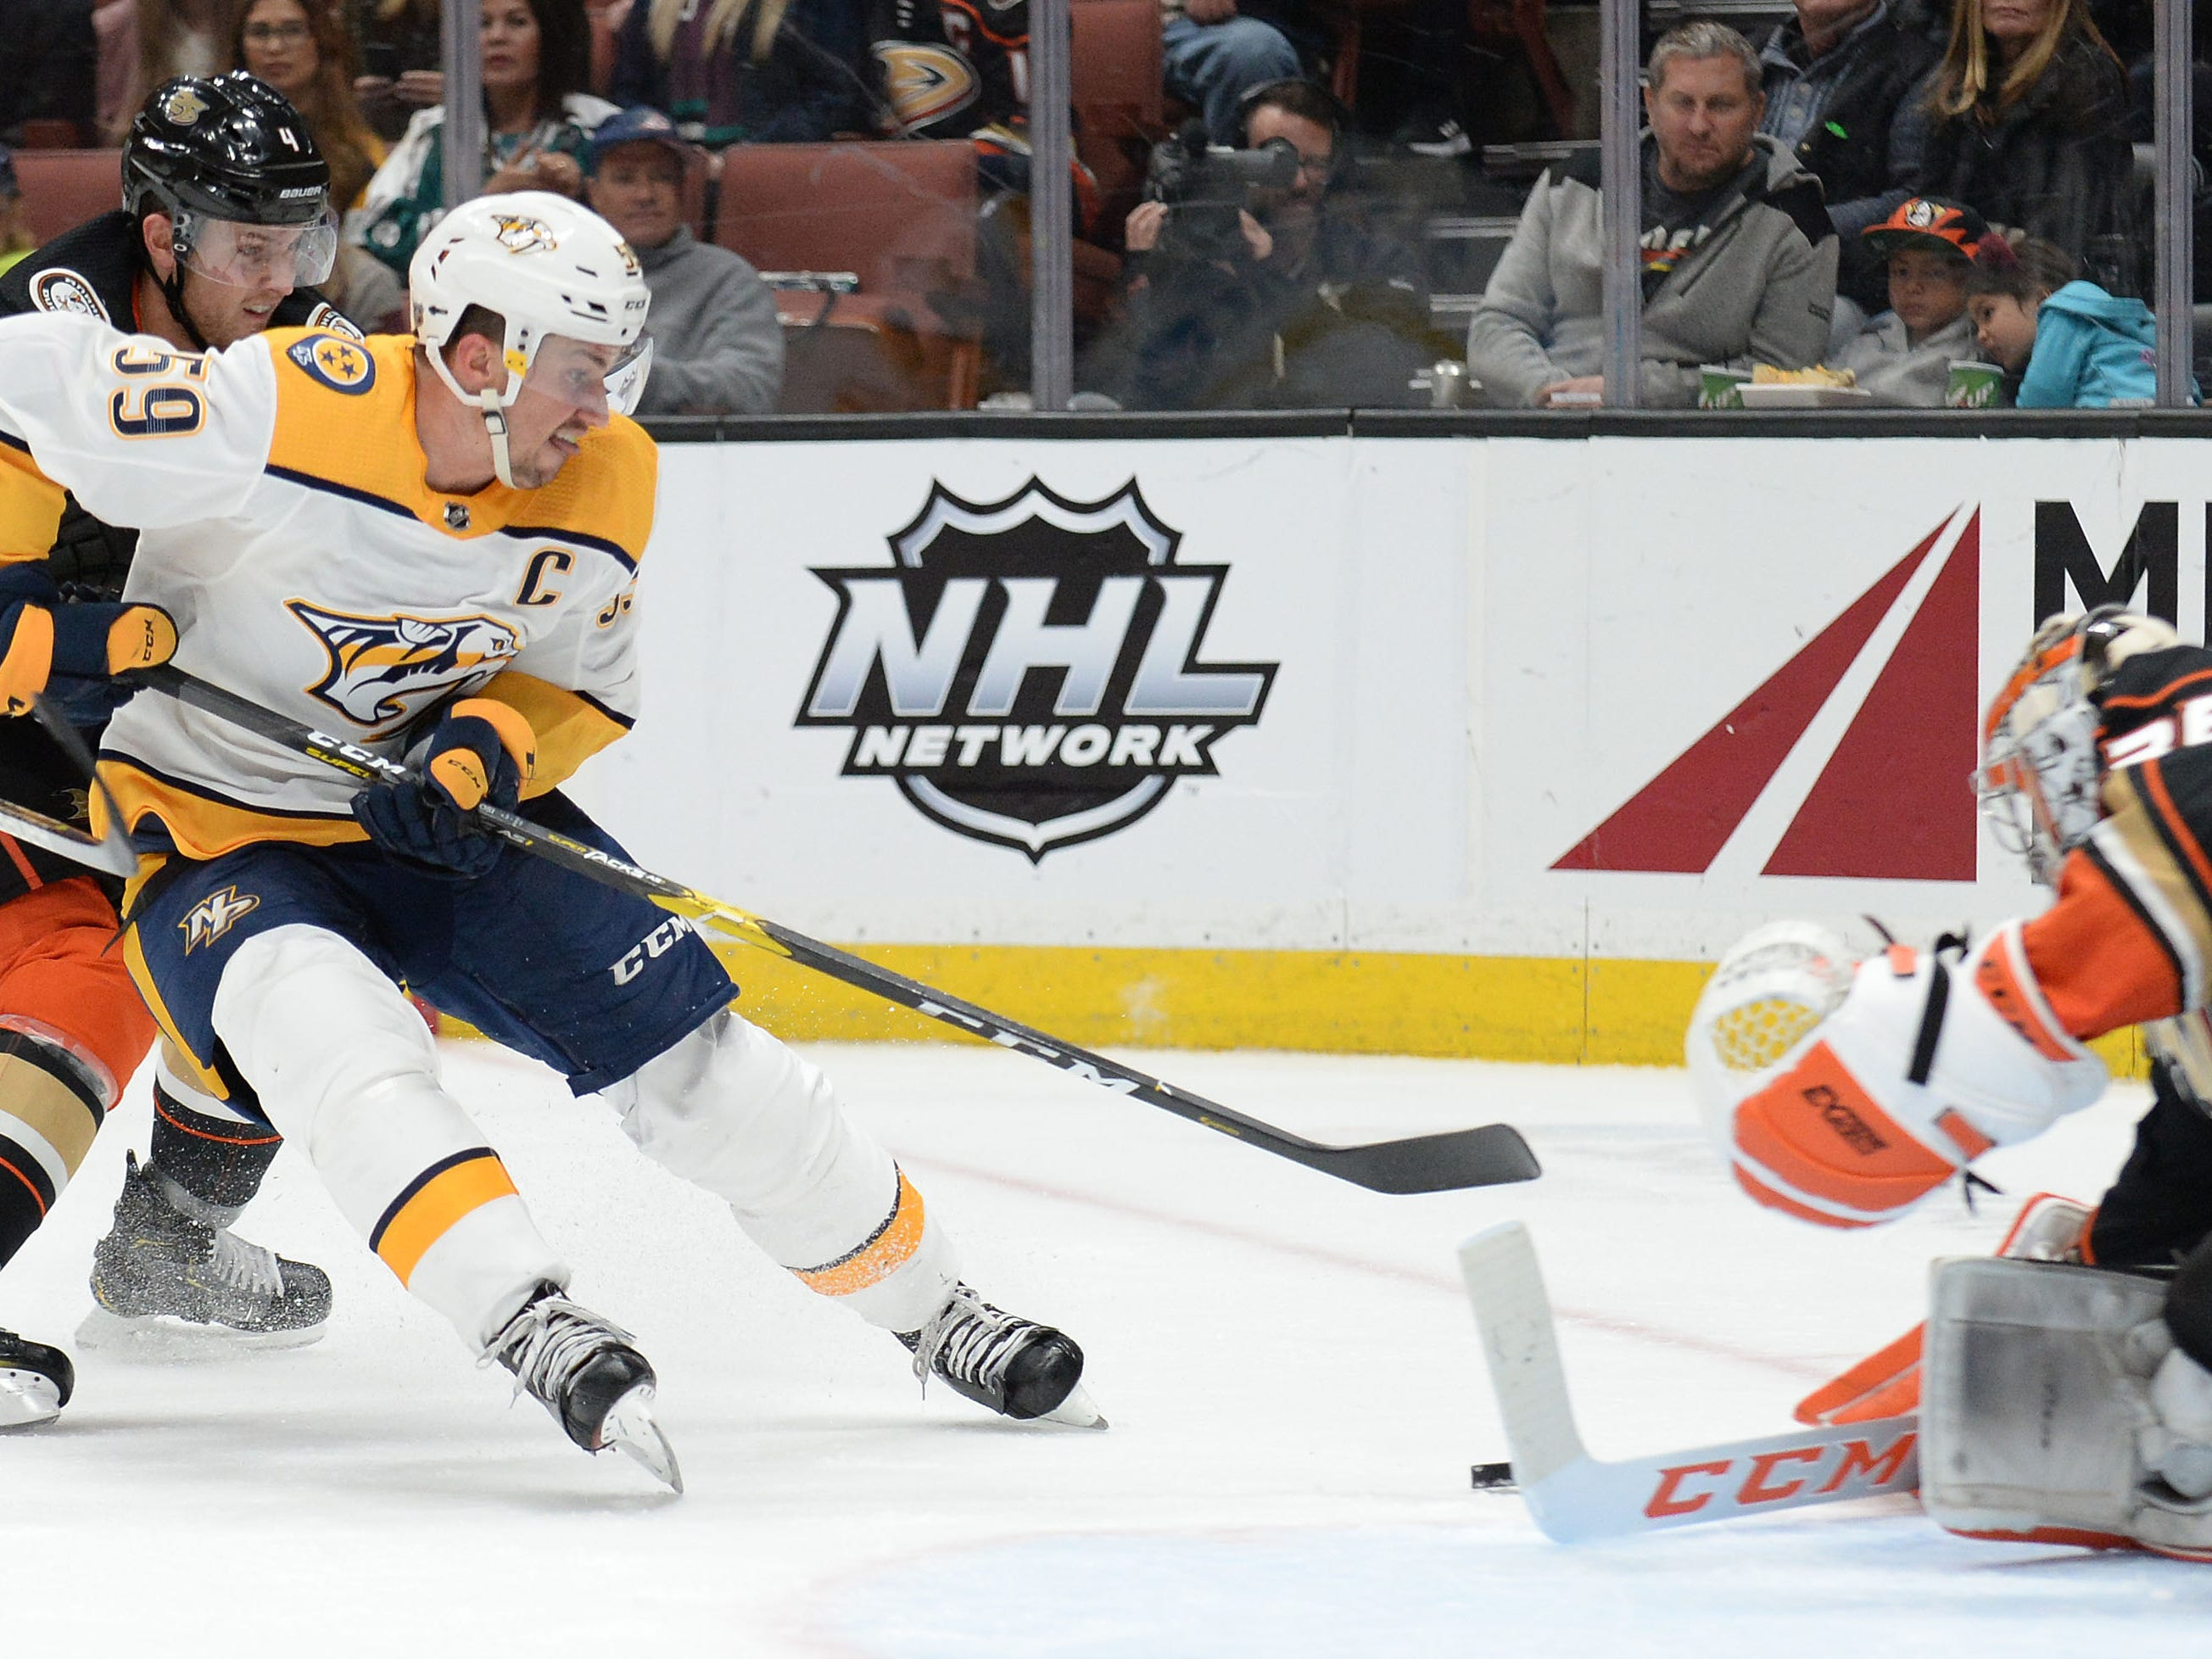 Nashville Predators defenseman Roman Josi (59) moves in on goal against Anaheim Ducks goaltender John Gibson (36) during the third period at Honda Center.